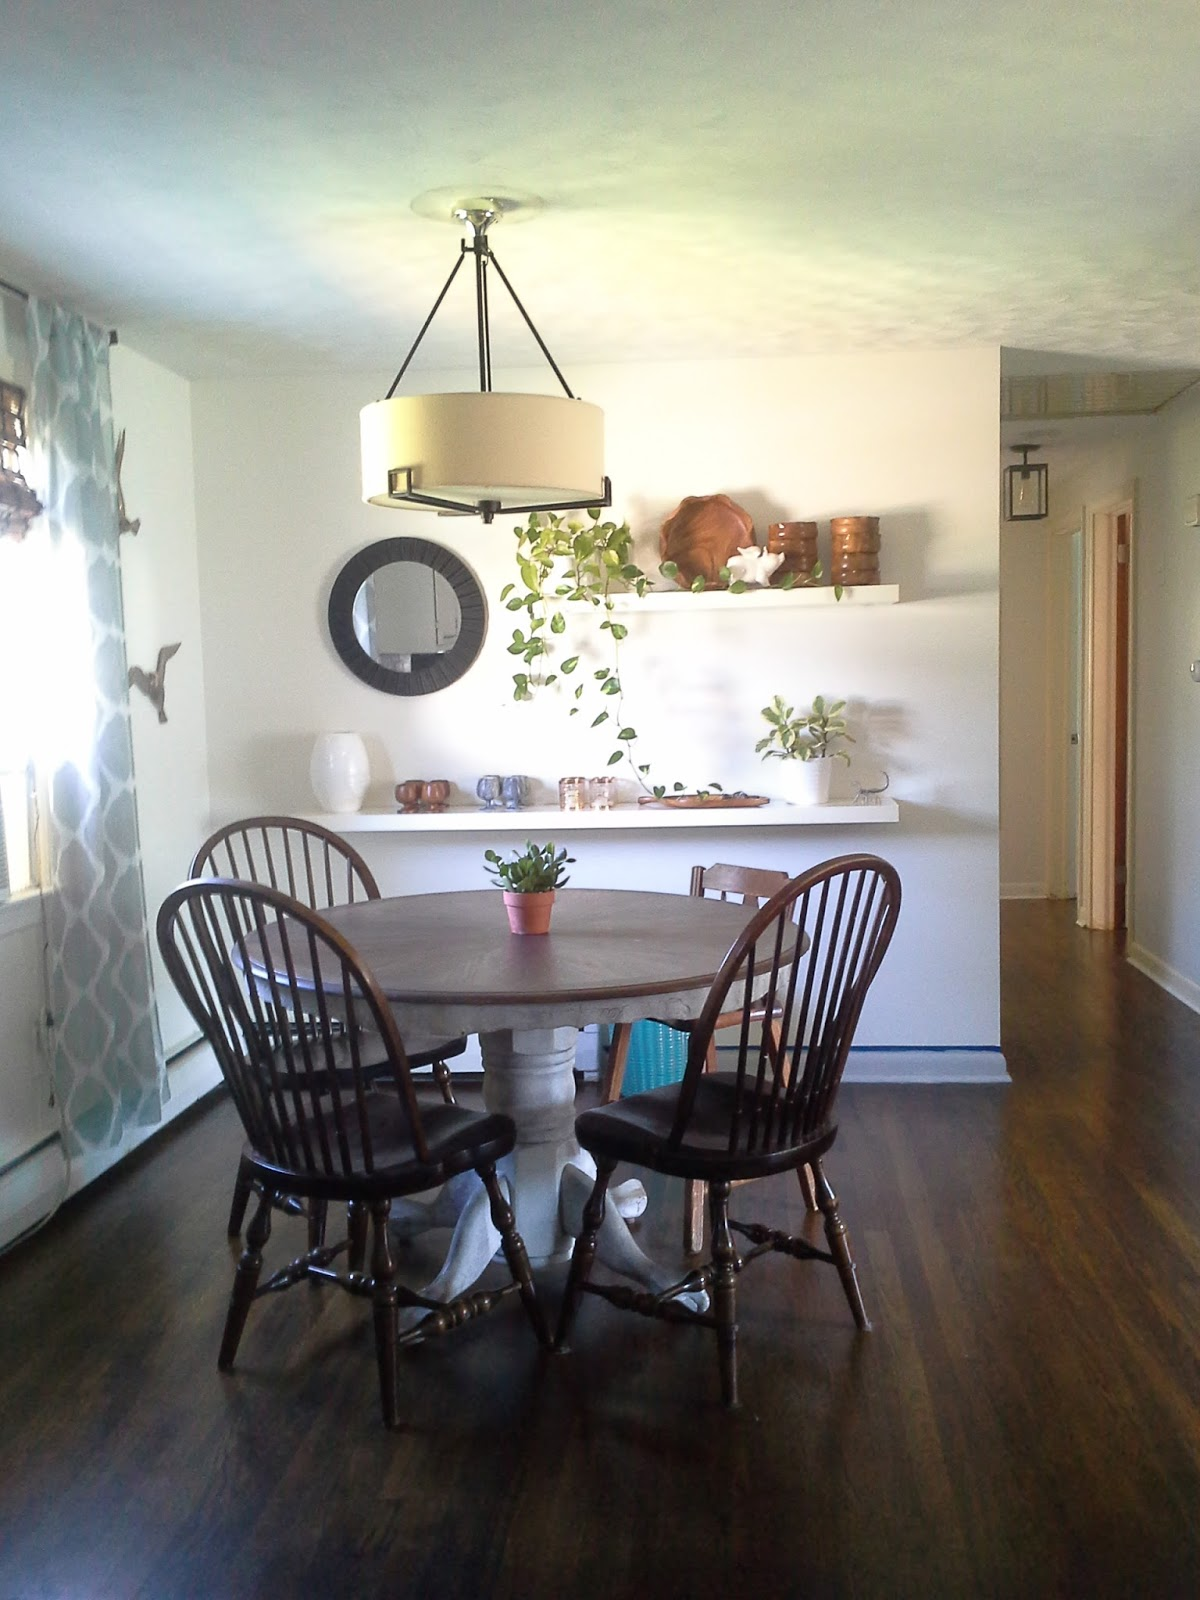 Eclectic Modern Farmhouse Dining Room Floating Shelves